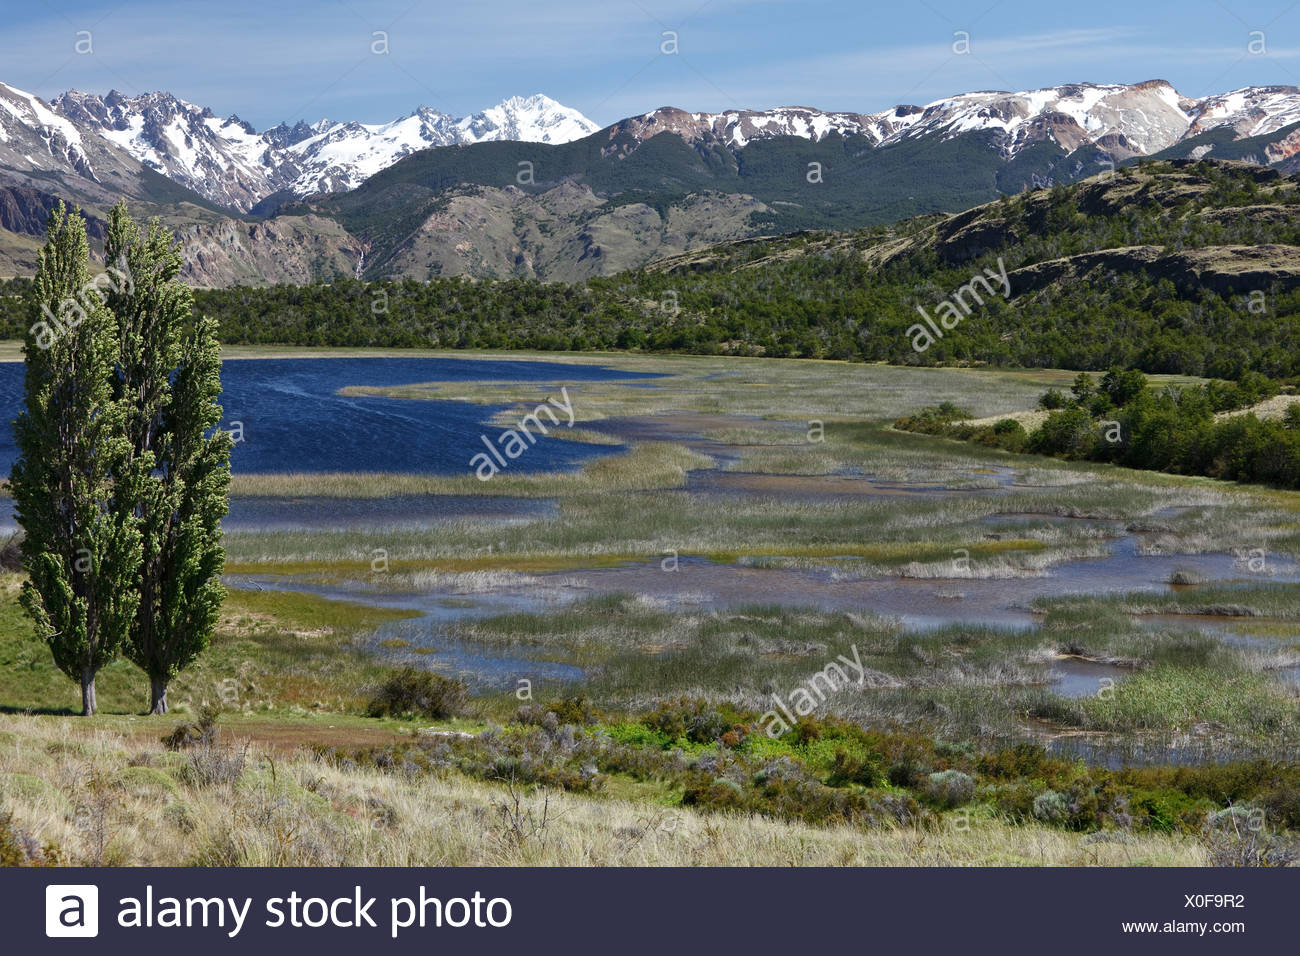 Poplar trees in the wind in front of the Chilean Andes on the Rio Chacabuco, Cochrane, Region de Aysen, Patagonia, Chile Stock Photo